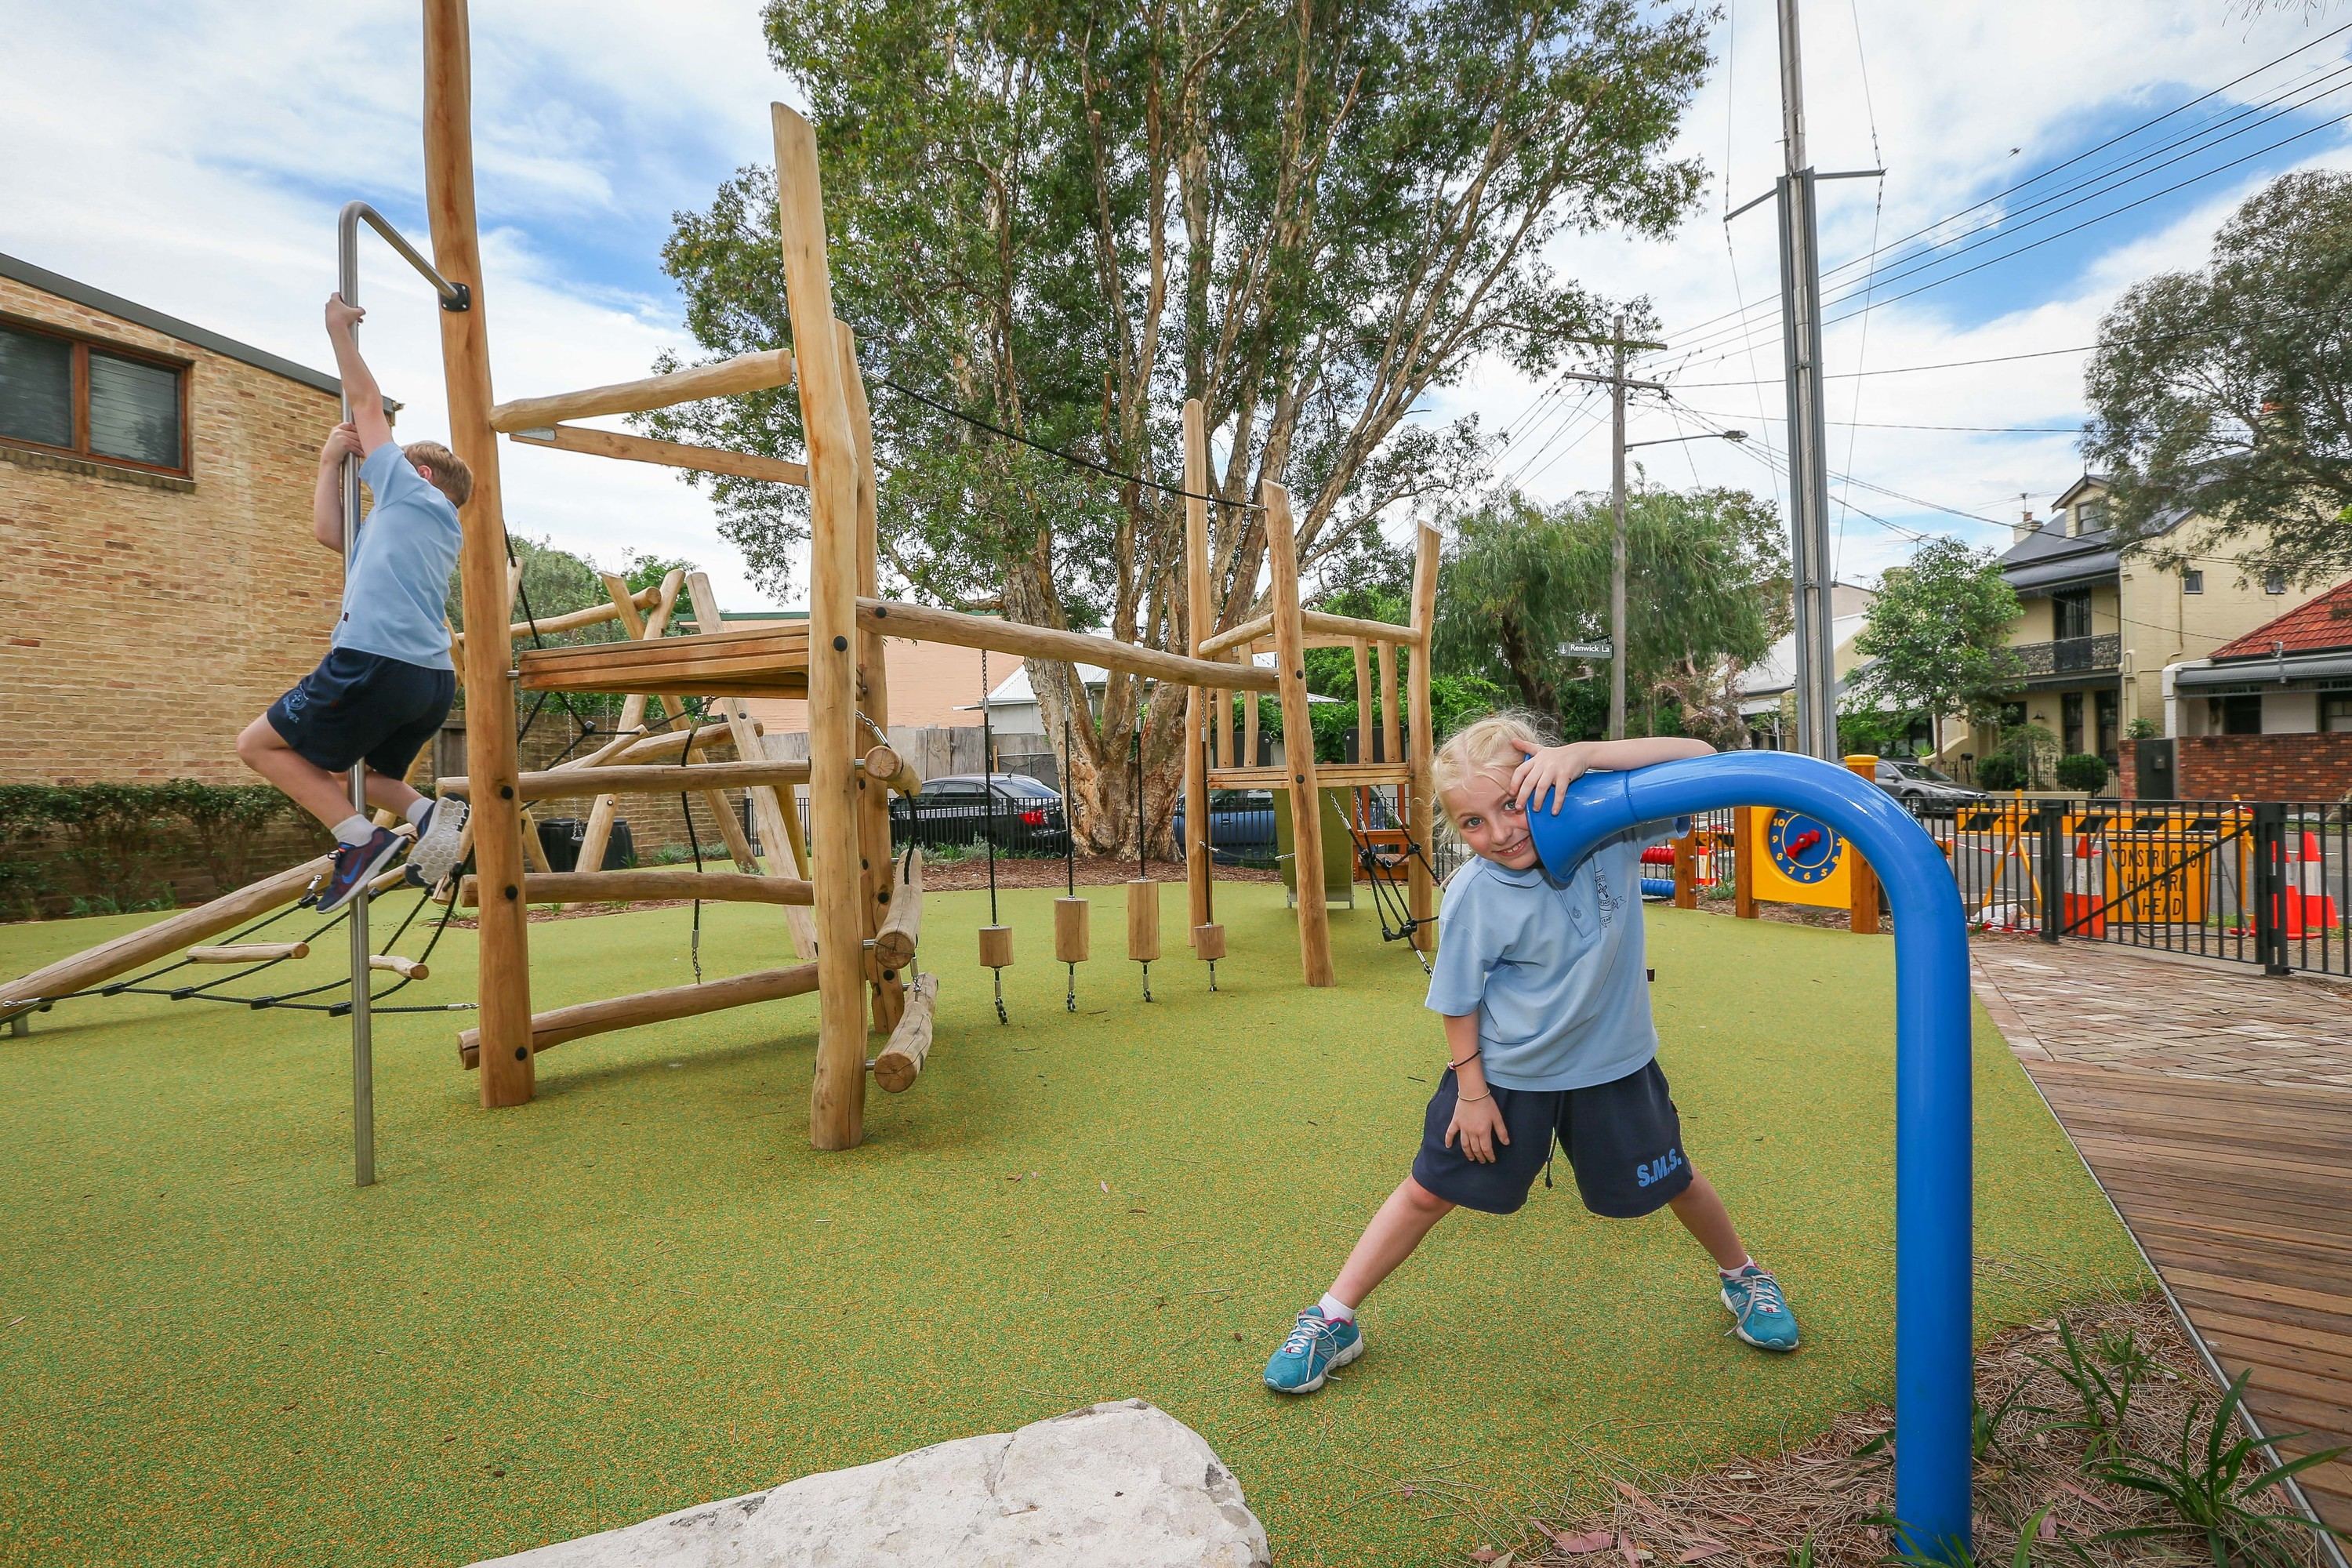 The 15 best playgrounds in Sydney